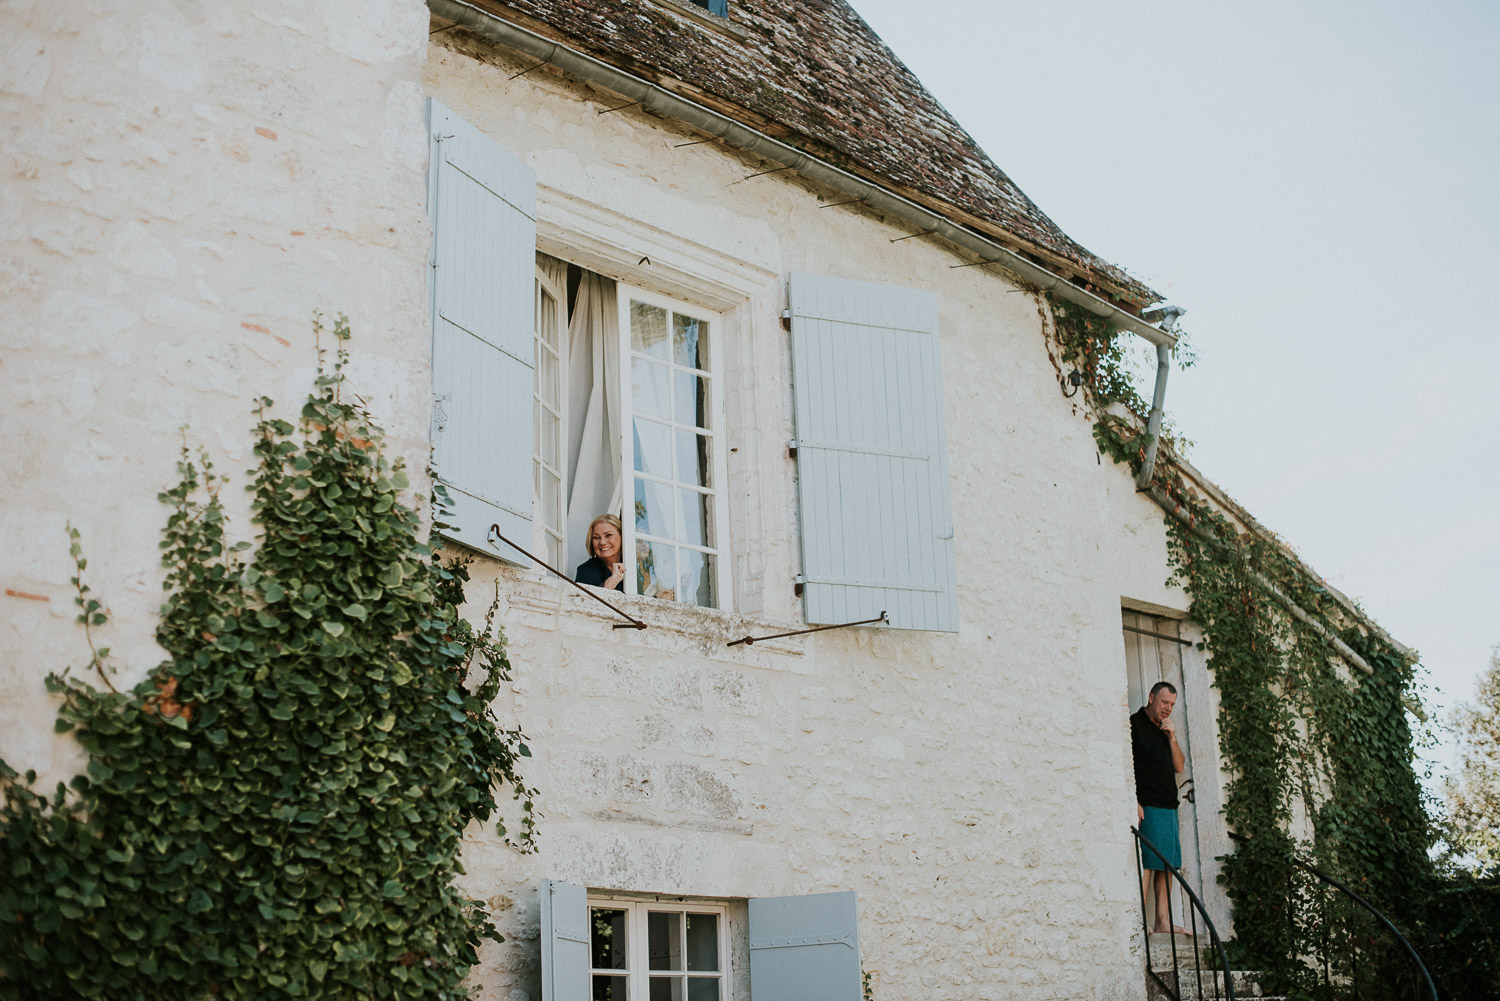 dordogne_eymet_wedding_france_katy_webb_photography_france_UK19